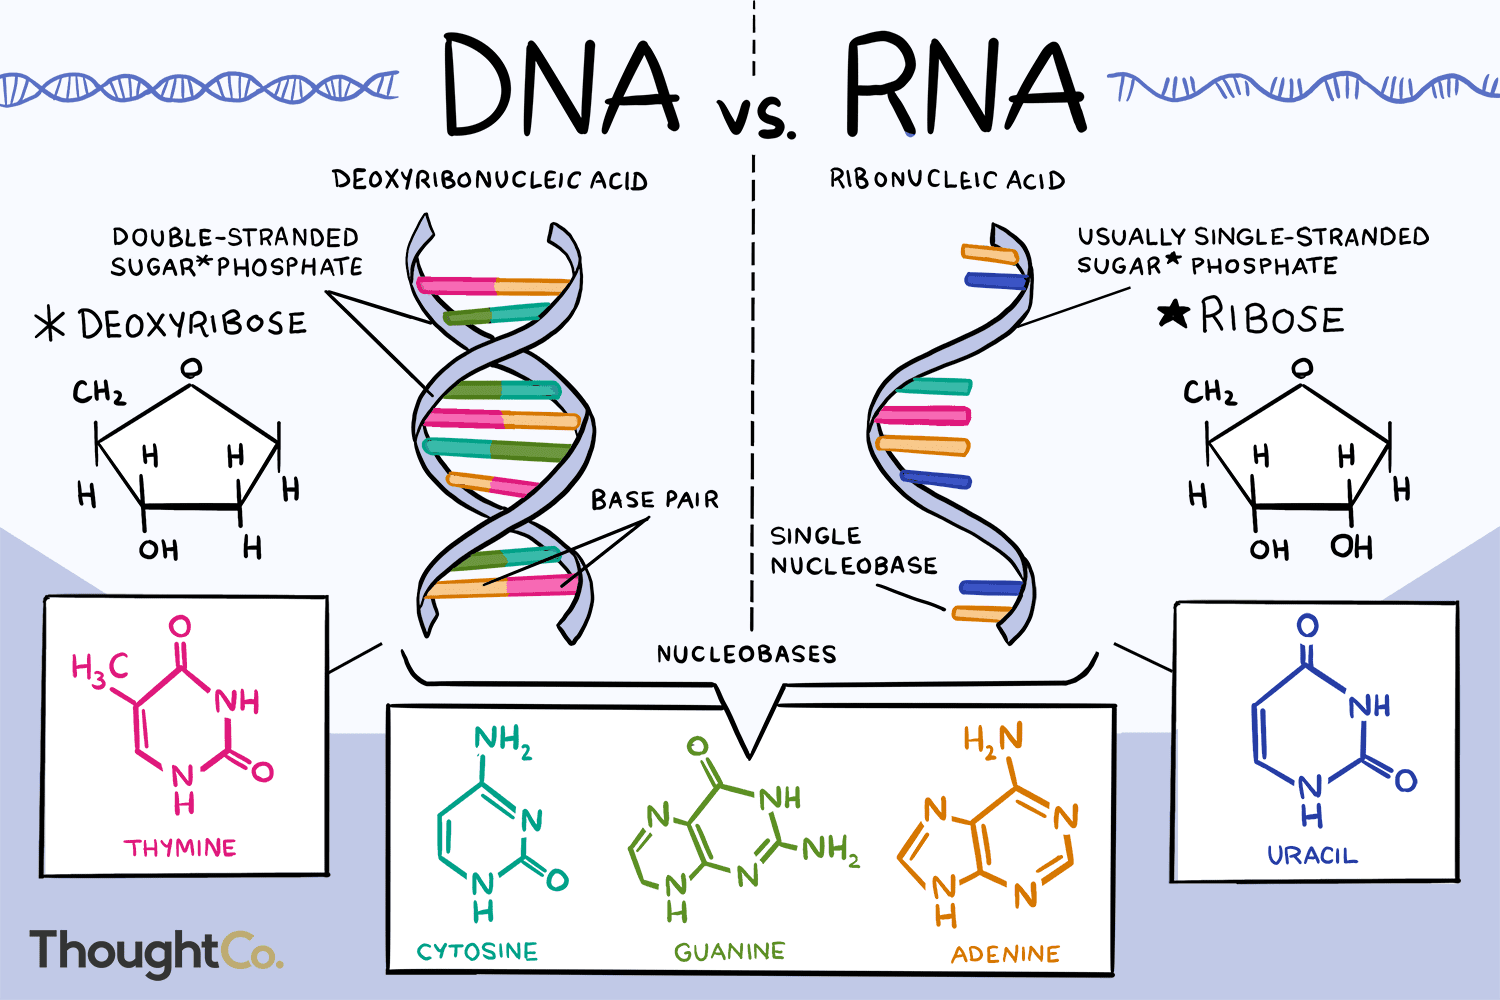 label the diagrams of dna nucleotides and bases the differences between    dna    and rna  the differences between    dna    and rna